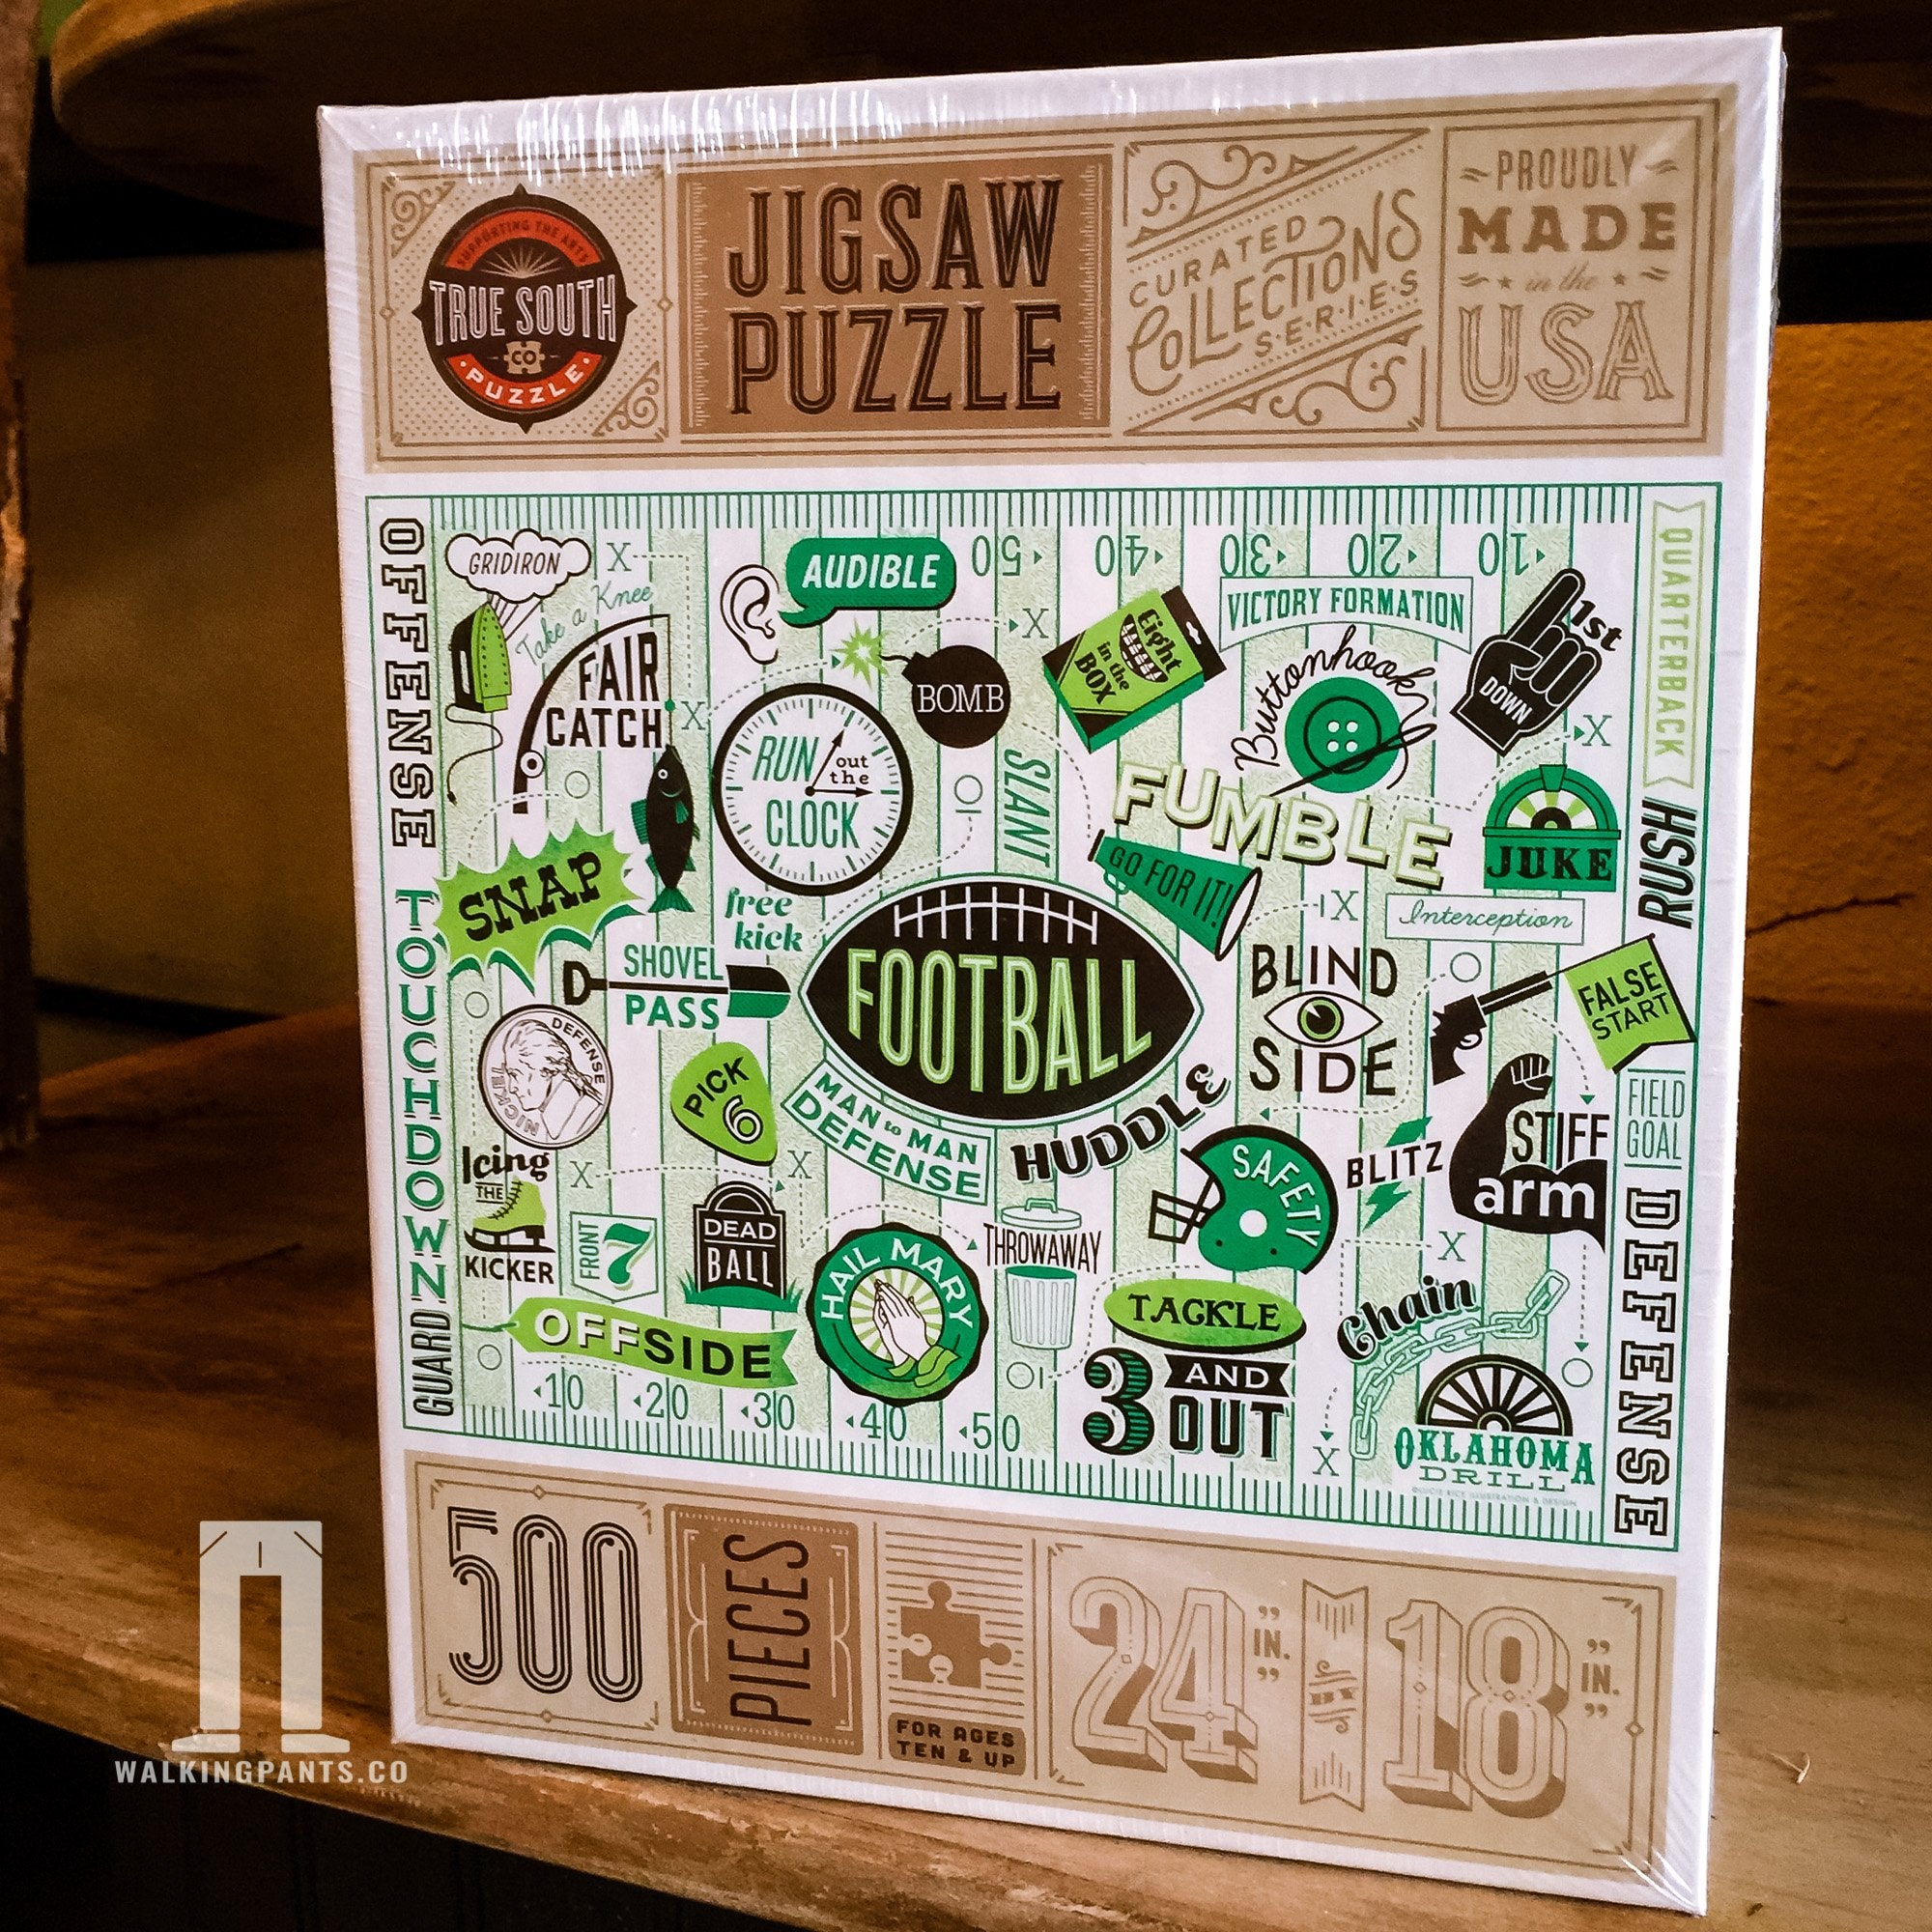 Buy Football, 500 Piece Jigsaw Puzzle from Walking Pants Curiosities, the Most un-General Gift Store in Downtown Memphis, Tennessee!